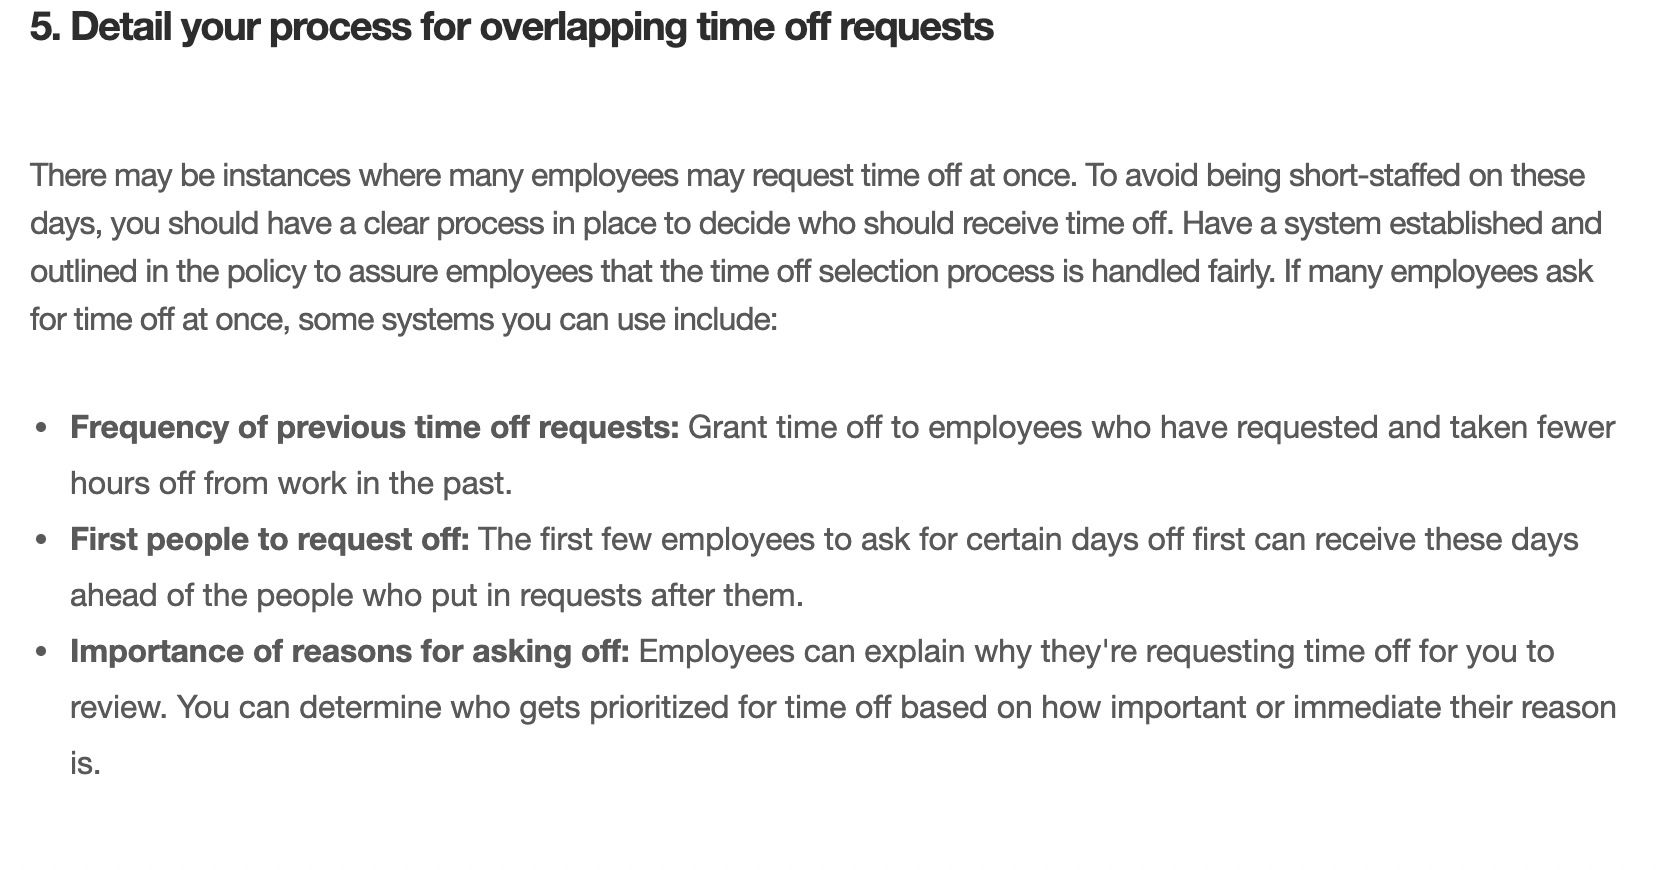 Detail your process for overlapping time off requests, such as Frequency of previous time off requests, First people to request off, and Importance of reasons for asking off.